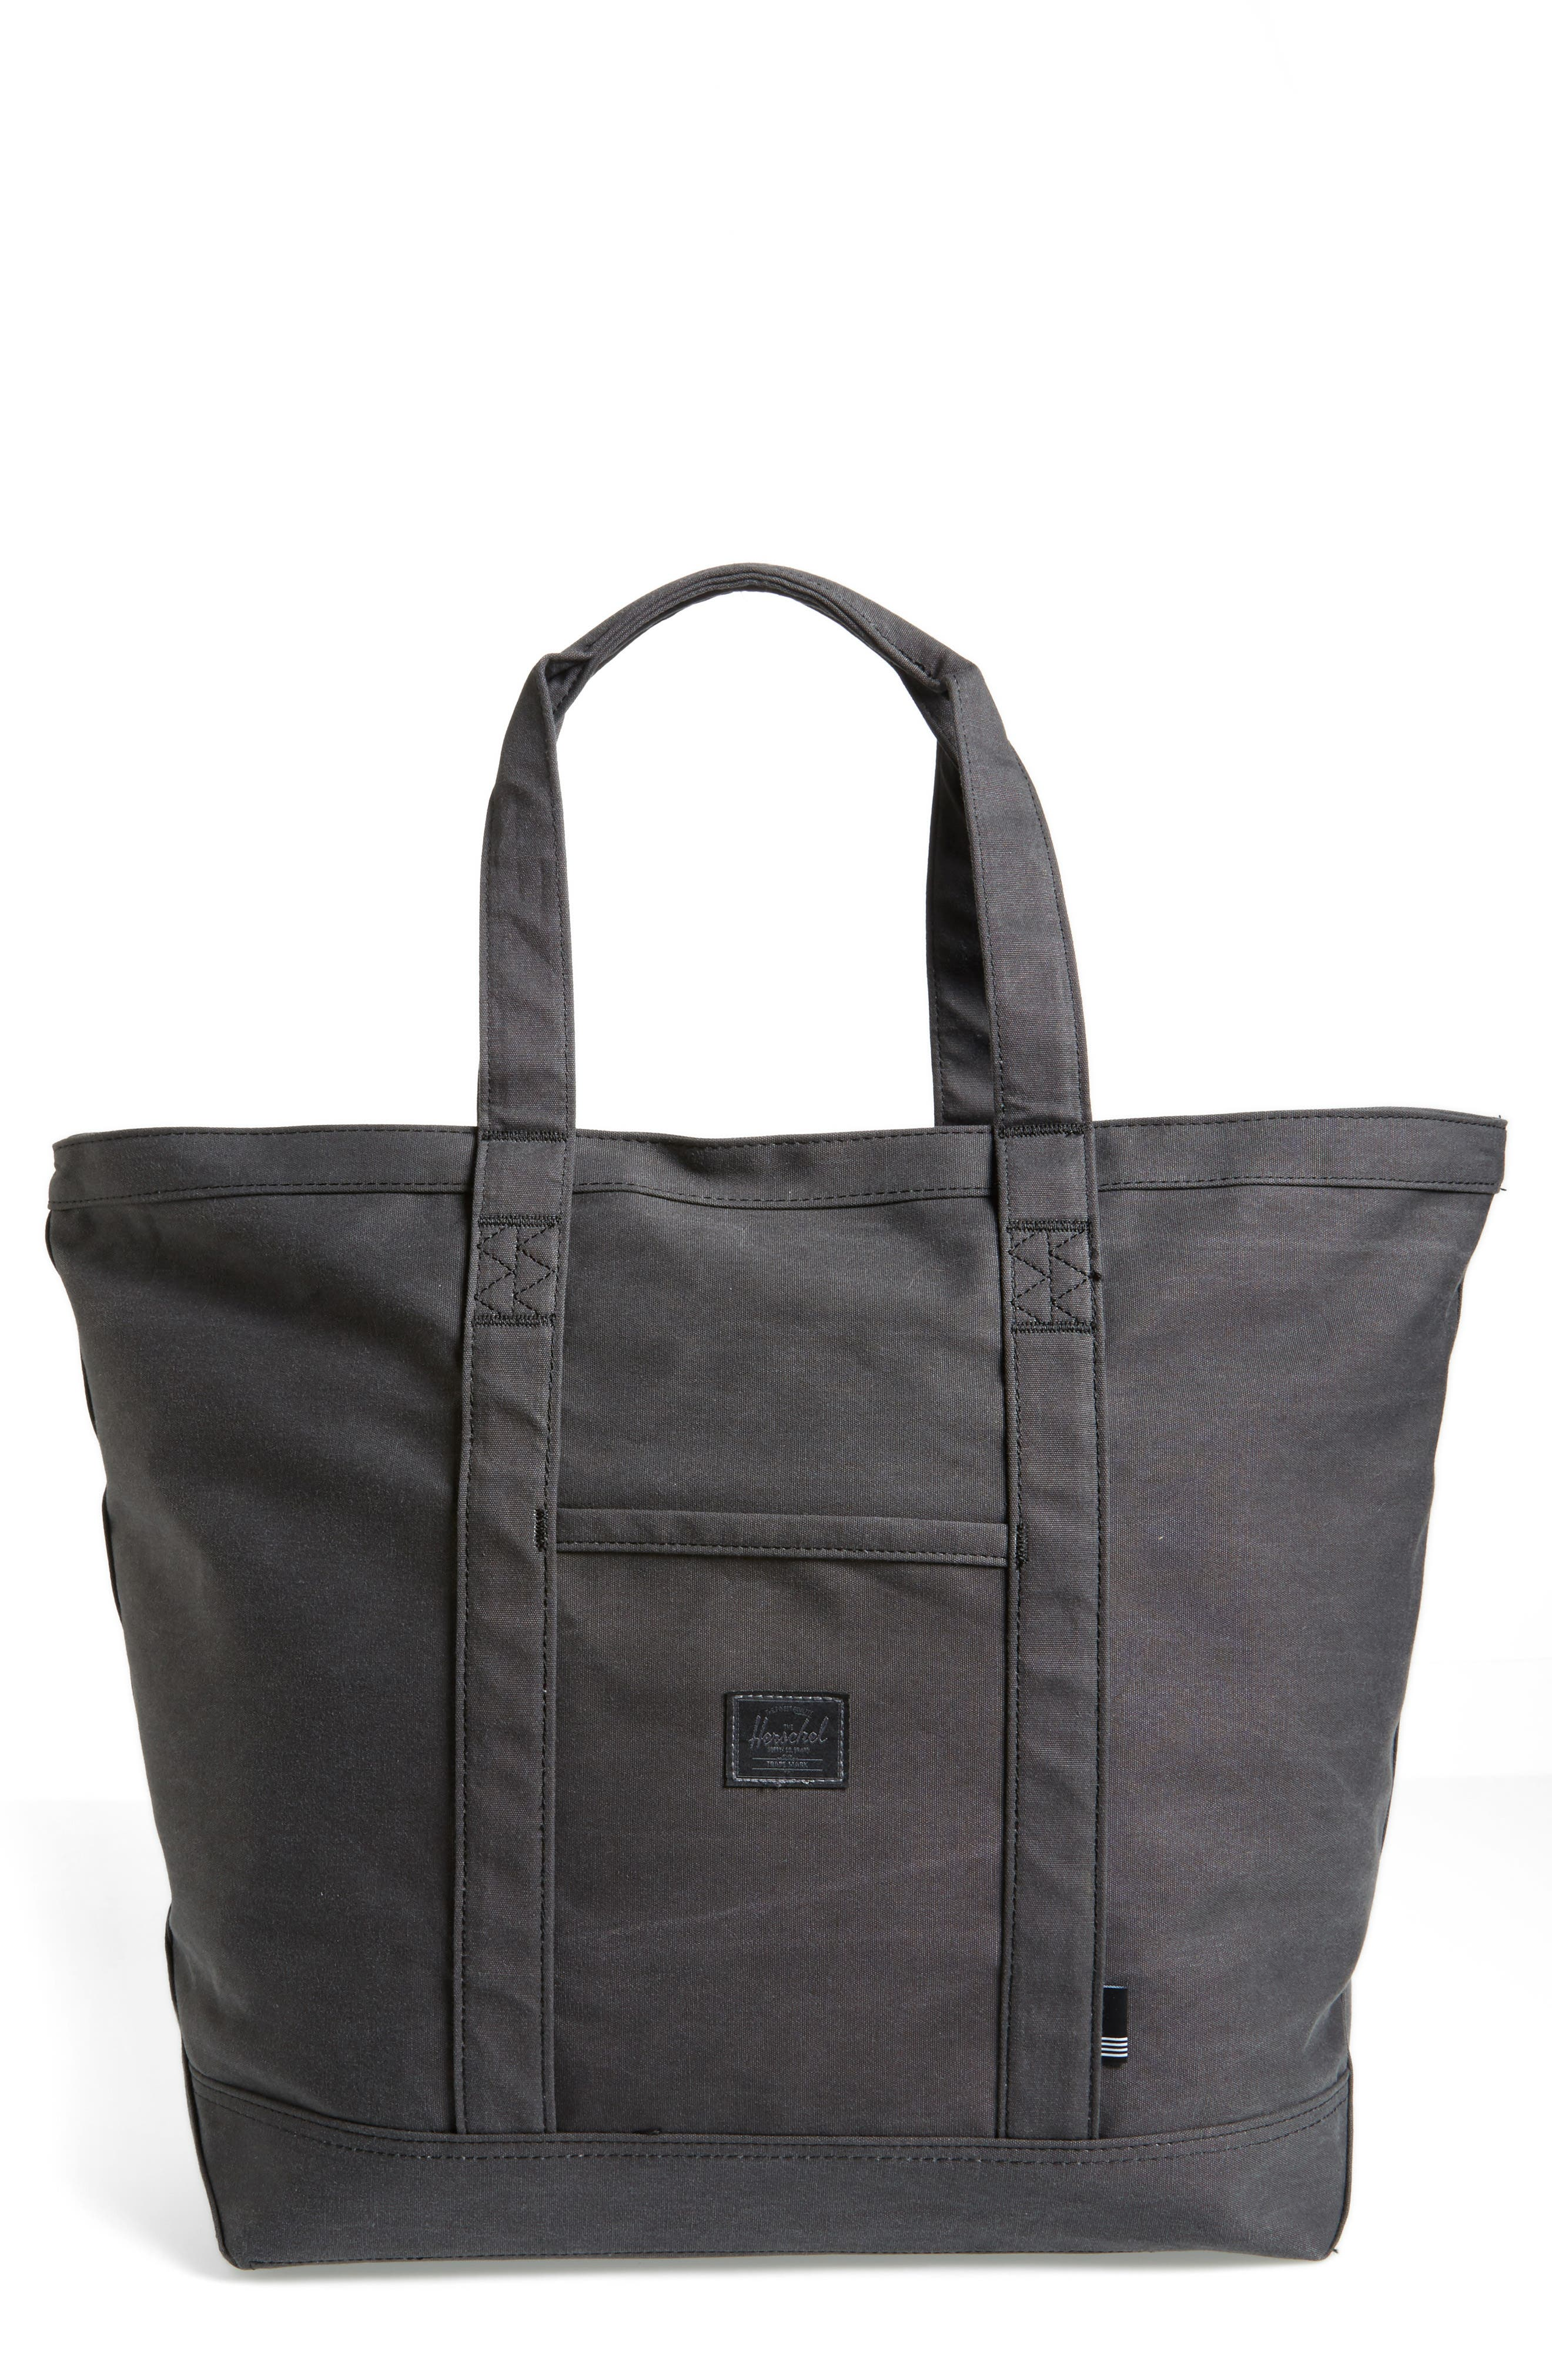 Bamfield Tote Bag,                         Main,                         color, Black